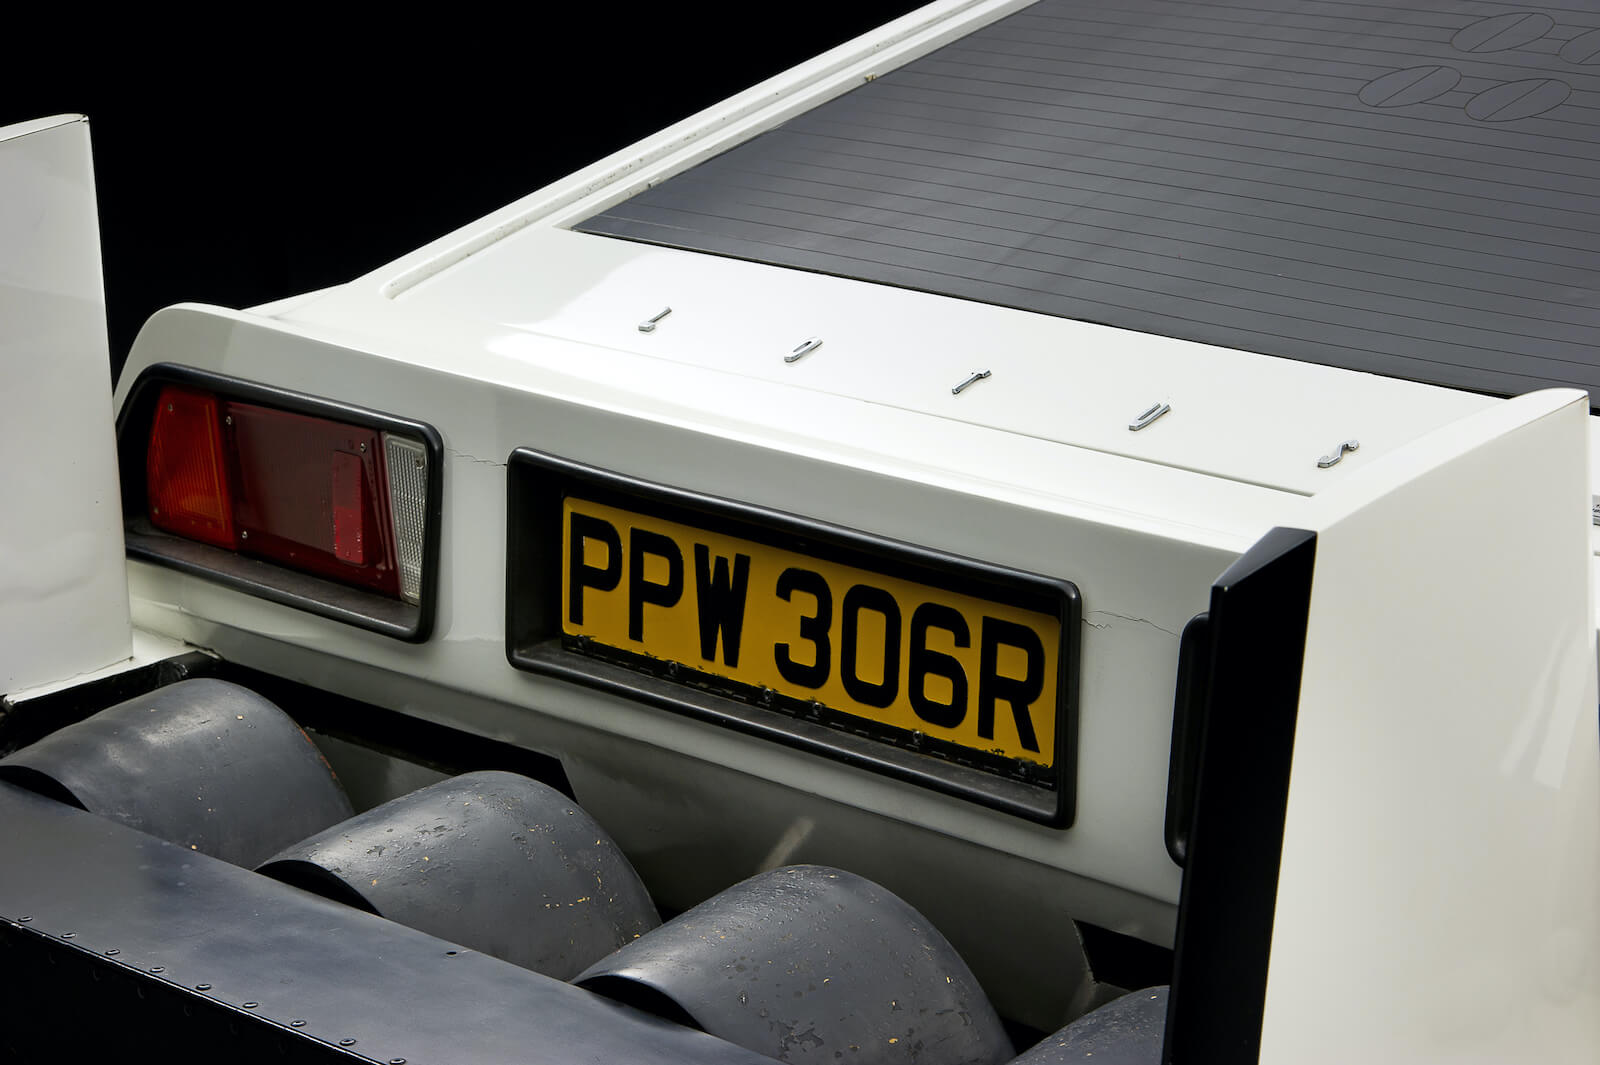 007 Lotus Esprit 'Submarine Car'